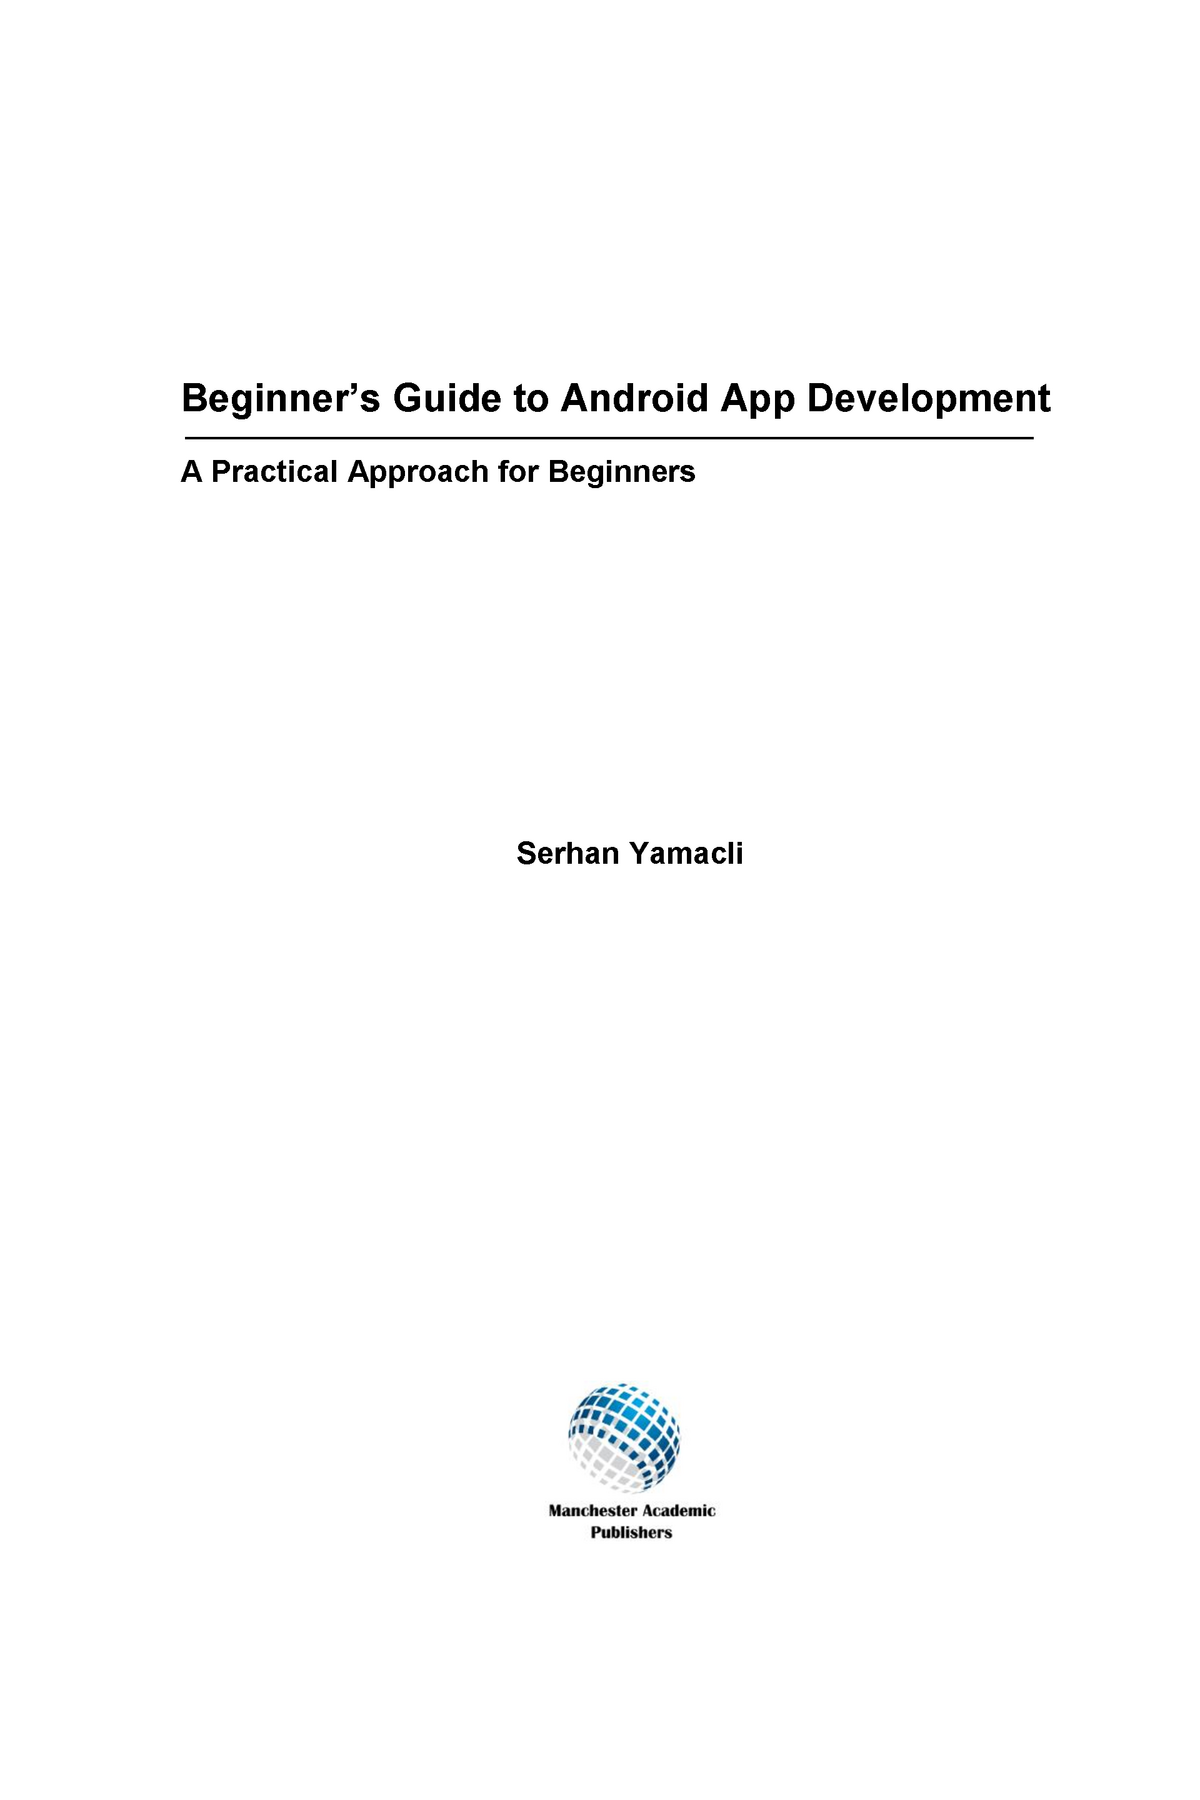 Android Development - Lecture notes 1,2,4,5,7 - Computer